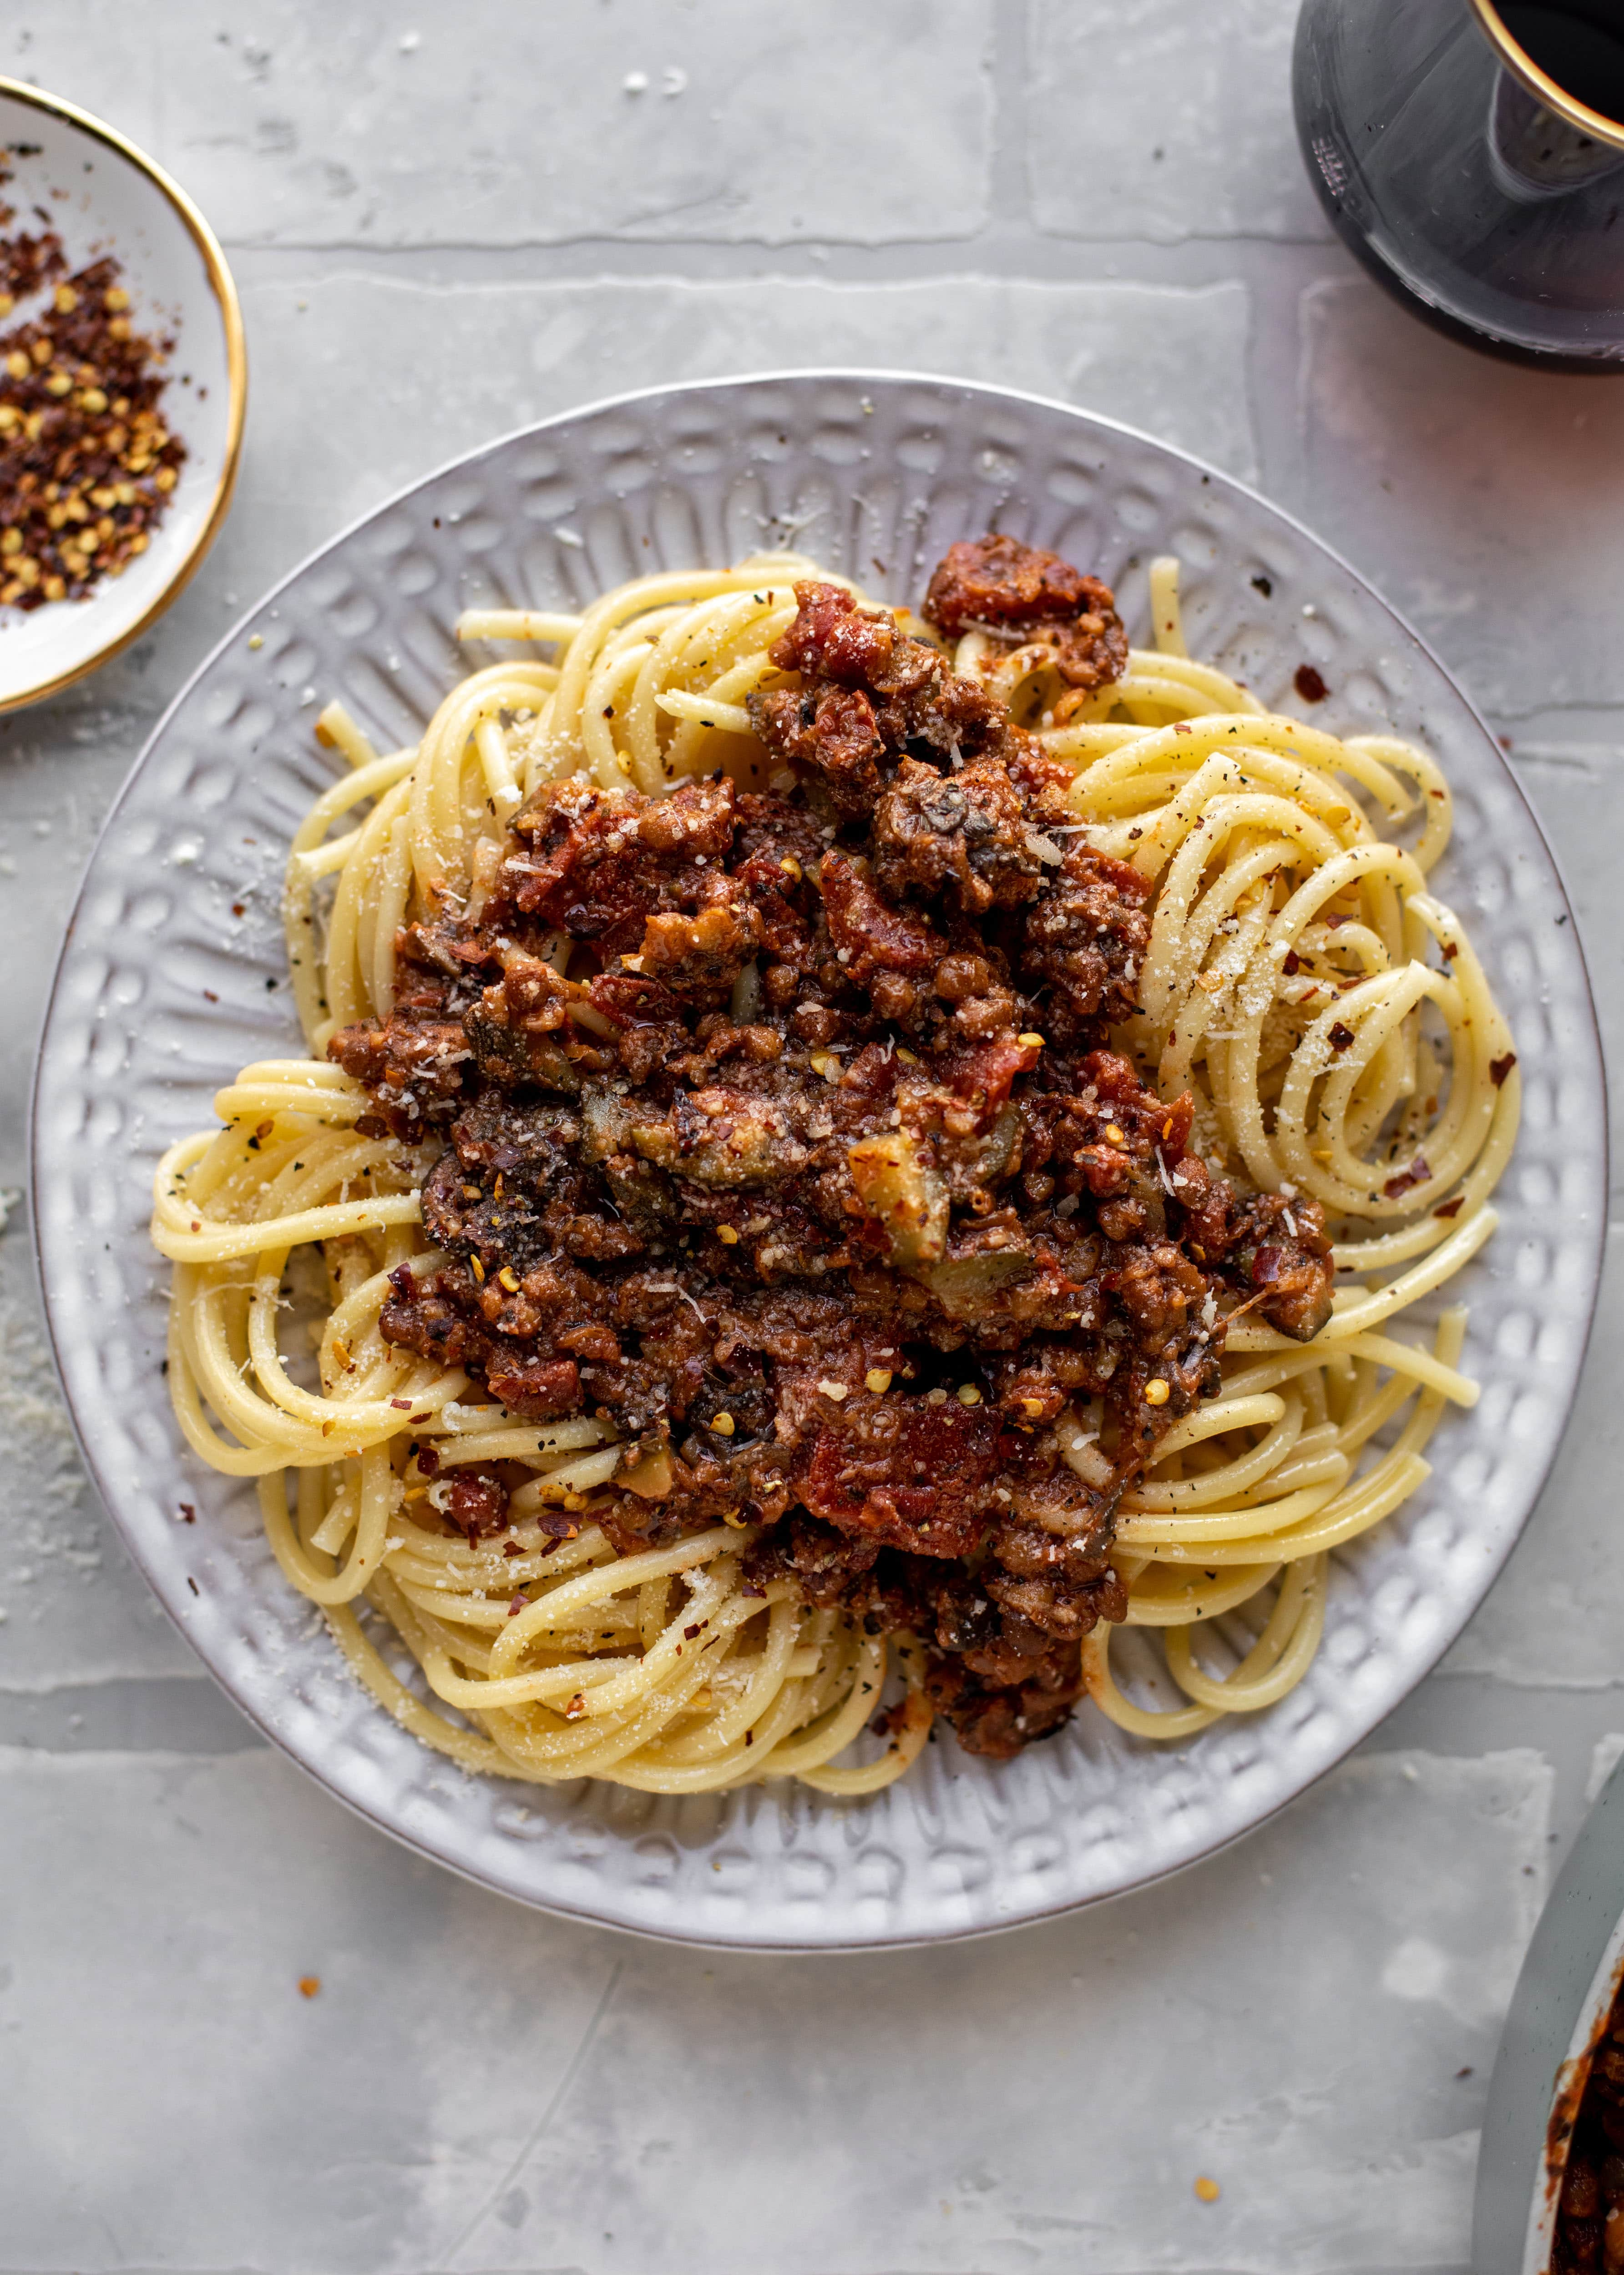 This lentil bolognese is incredible! Super hearty, loaded with vegetables, saucy, rich and decadent. You won't even miss the meat!